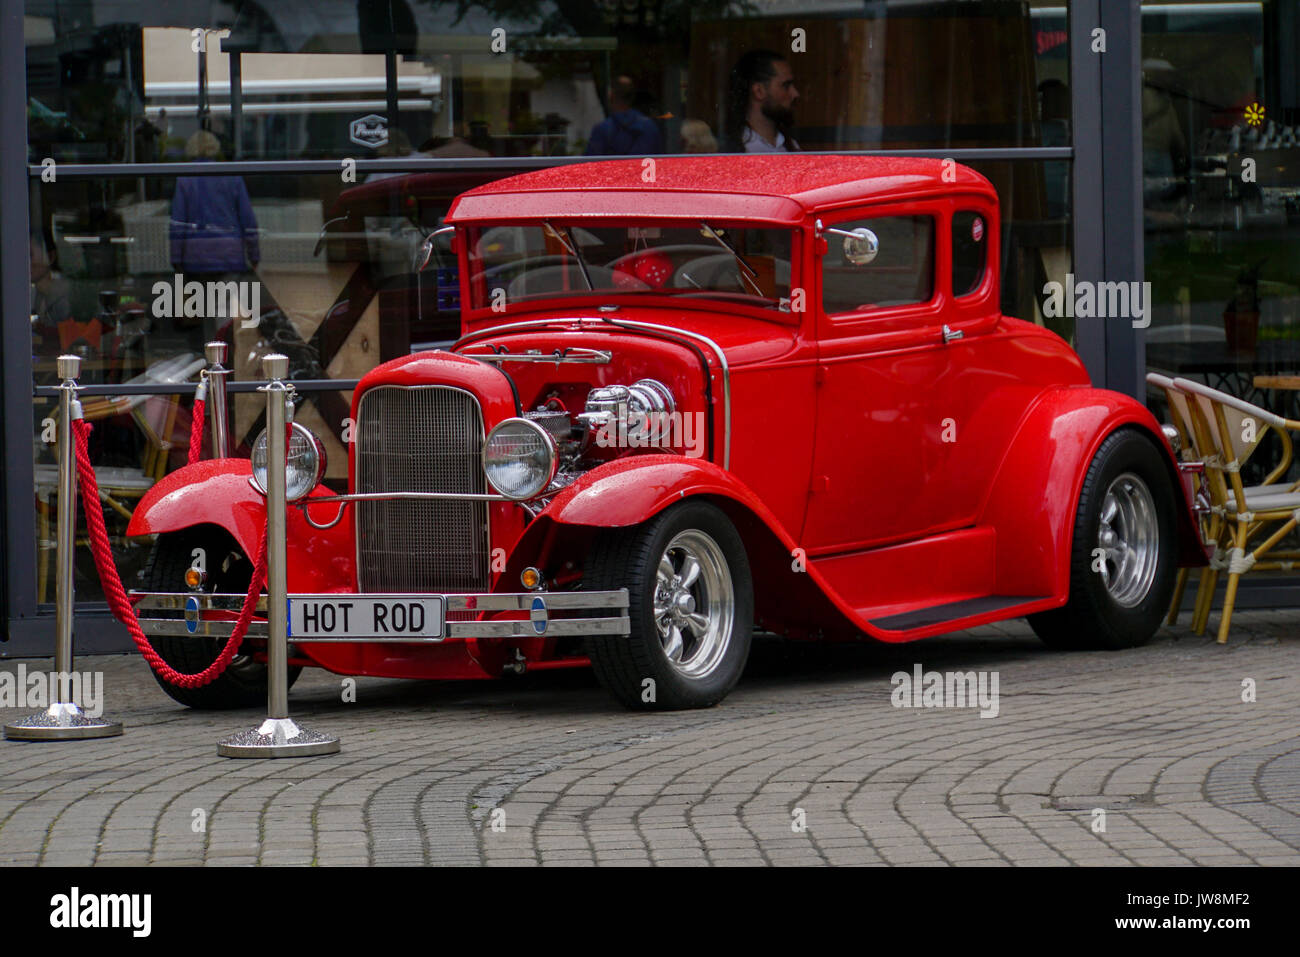 Ford Hot Rod Stock Photos & Ford Hot Rod Stock Images - Alamy